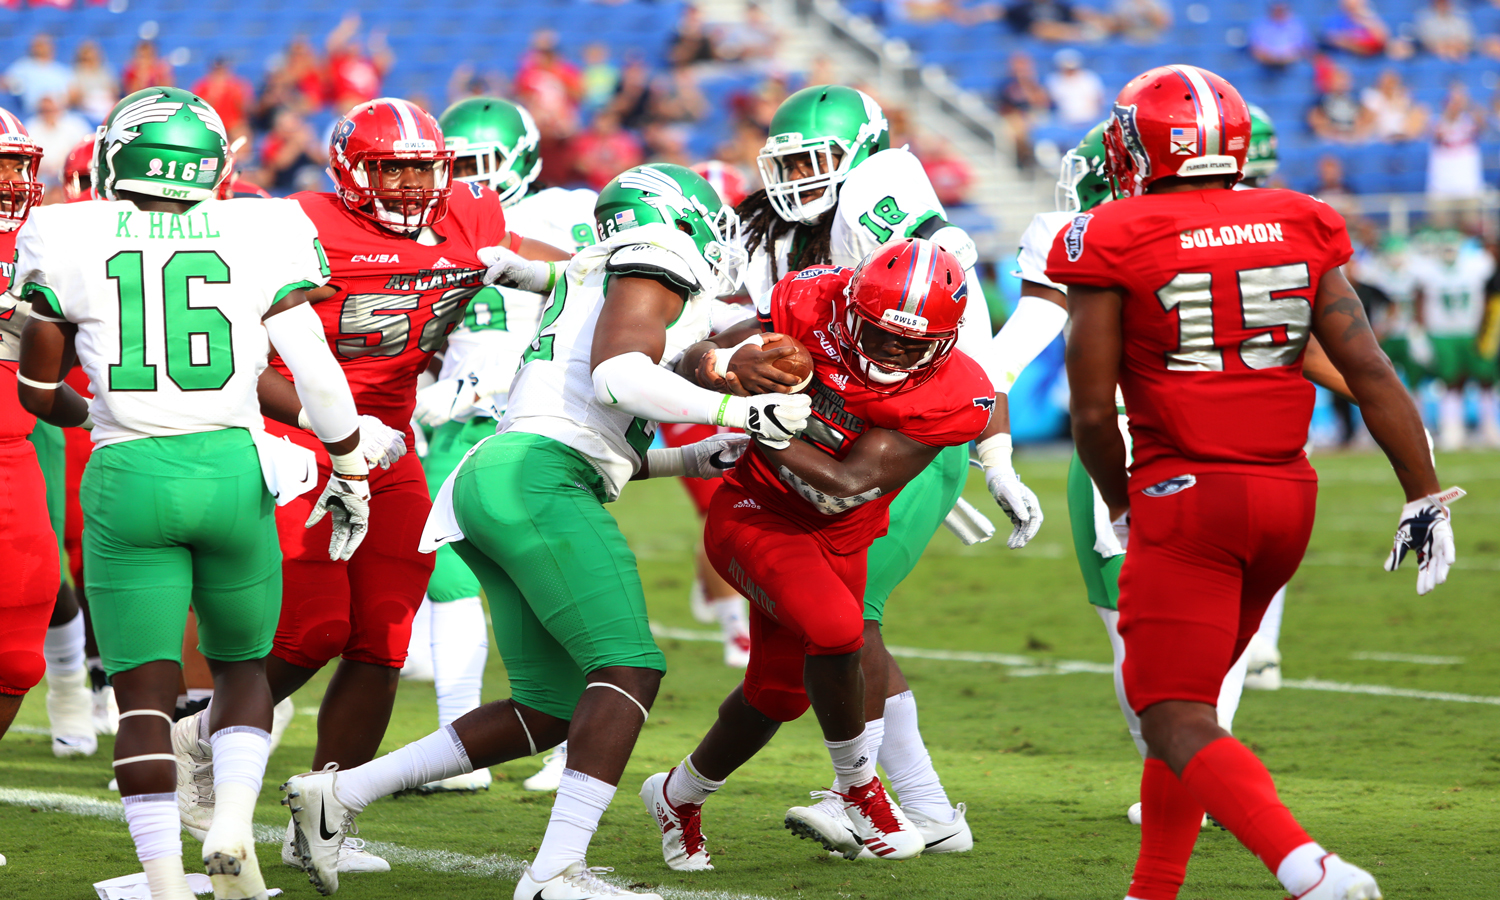 FAU sophomore running back Devin Singletary (5) gets tackled by North Texas redshirt junior linebacker E.J. Ejiya (22). FAU went on to win against North Texas 69-31 on Saturday.  Alexander Rodriguez | Photo Editor